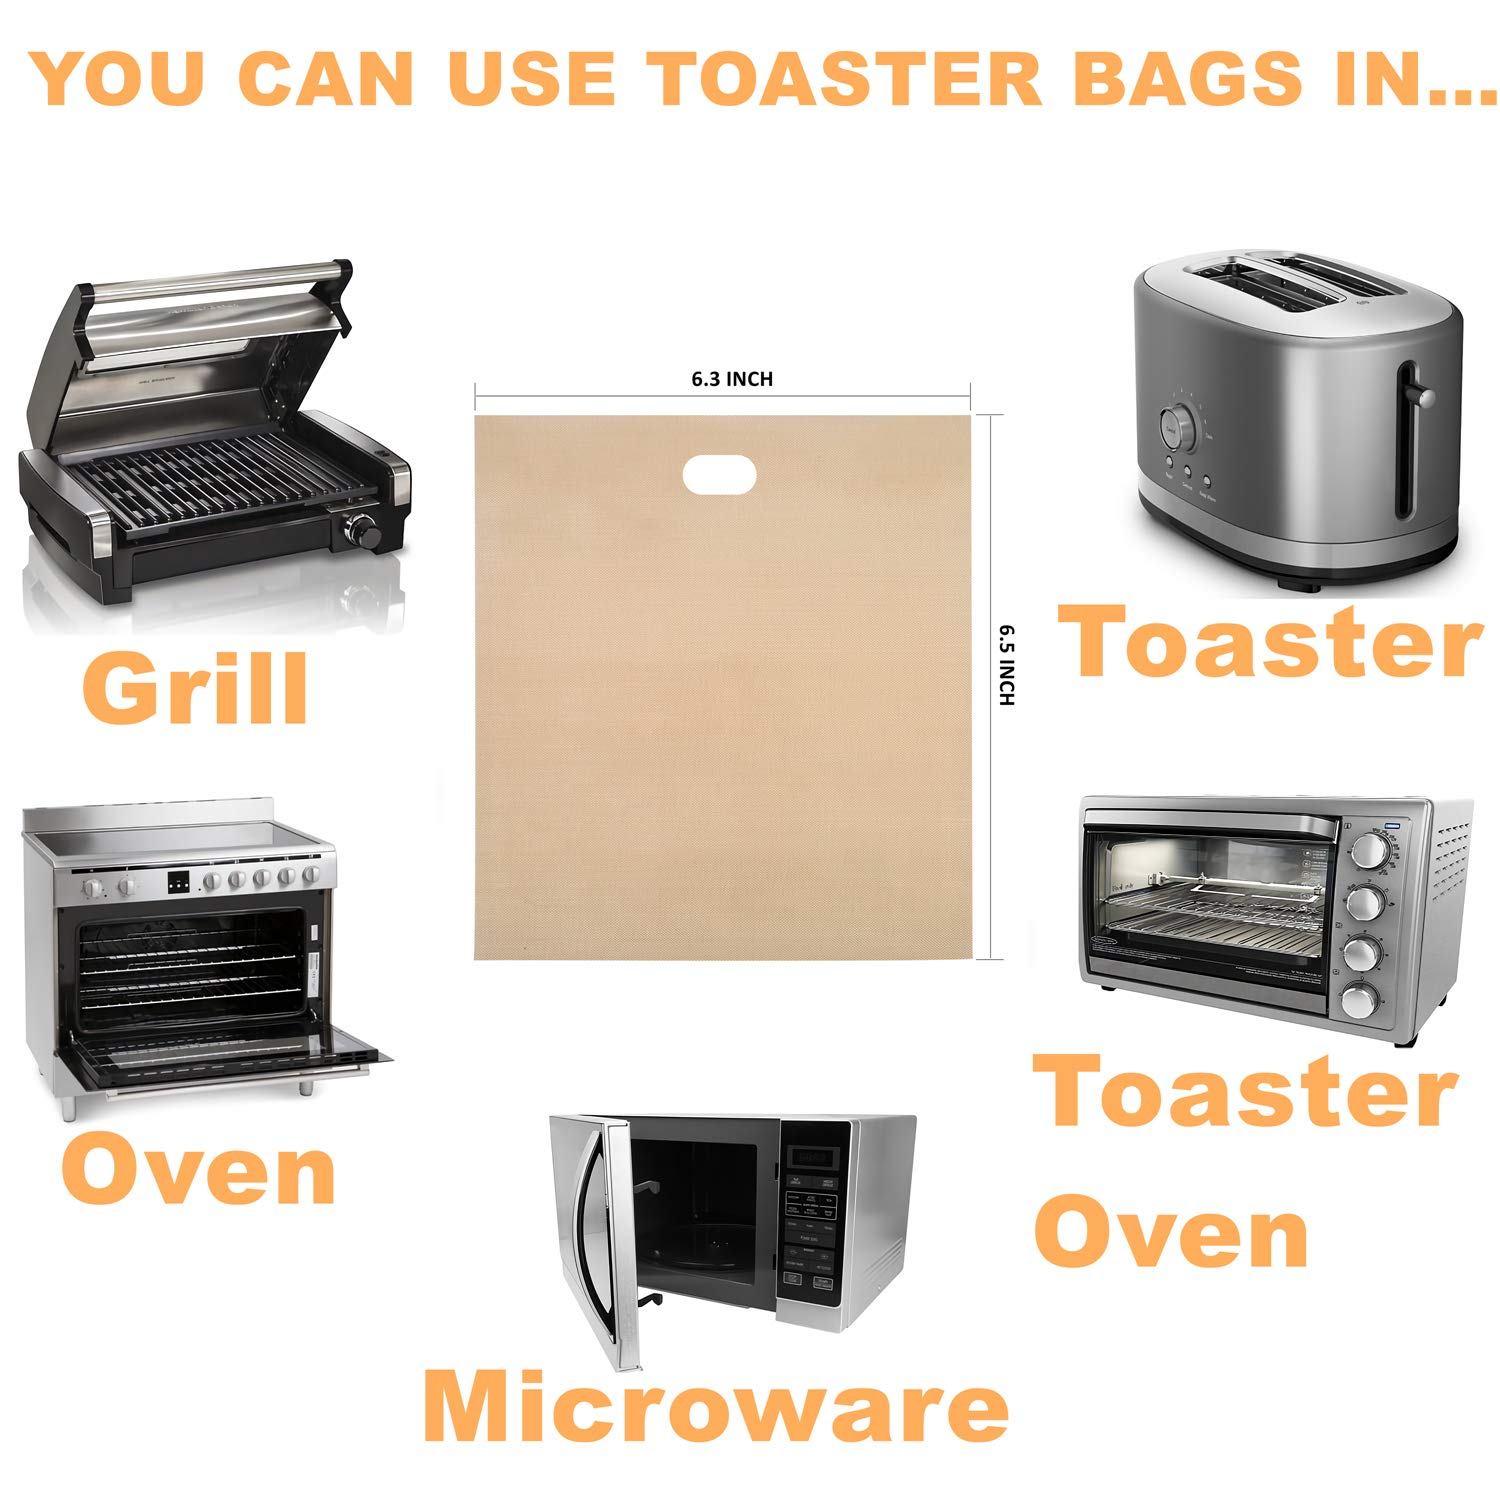 Non Stick Toaster Grilled Cheese Bags Reusable and Heat Resistant Easy to Clean, Gluten Free, FDA Approved, Perfect for Sandwiches, Chicken, Nuggets, Panini and Garlic Toasts - 10 Pcs by Famebird (Image #4)